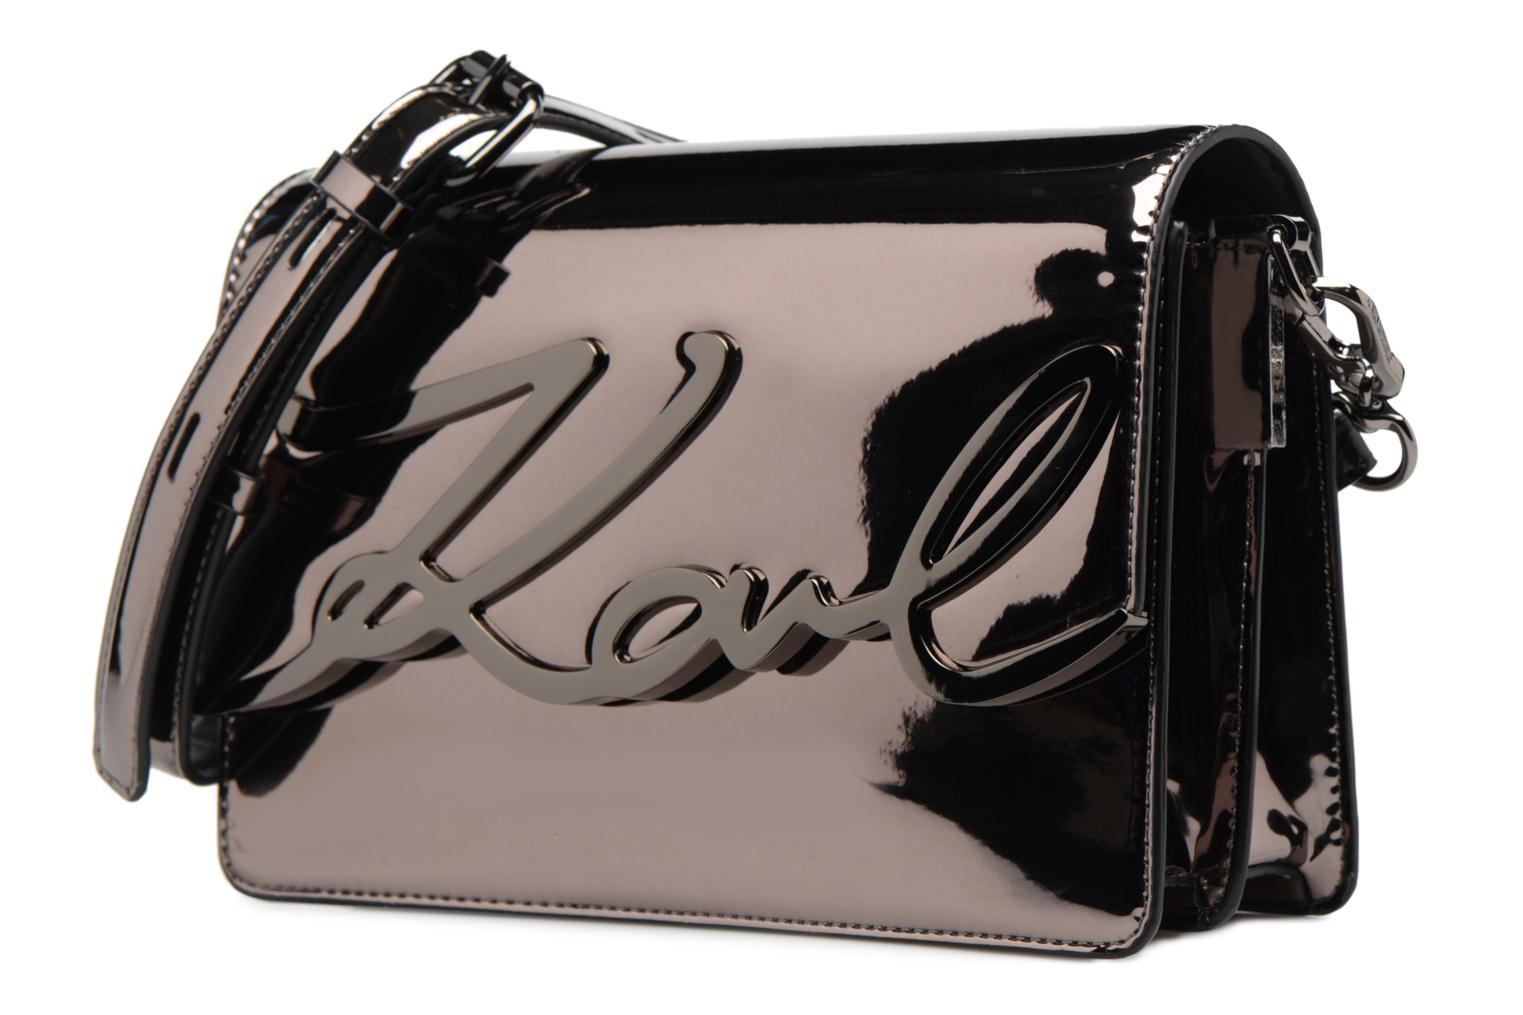 Signature LAGERFELD KARL Bag NICKEL A975 Metallic Shoulder Gloss K wBnnExzP4